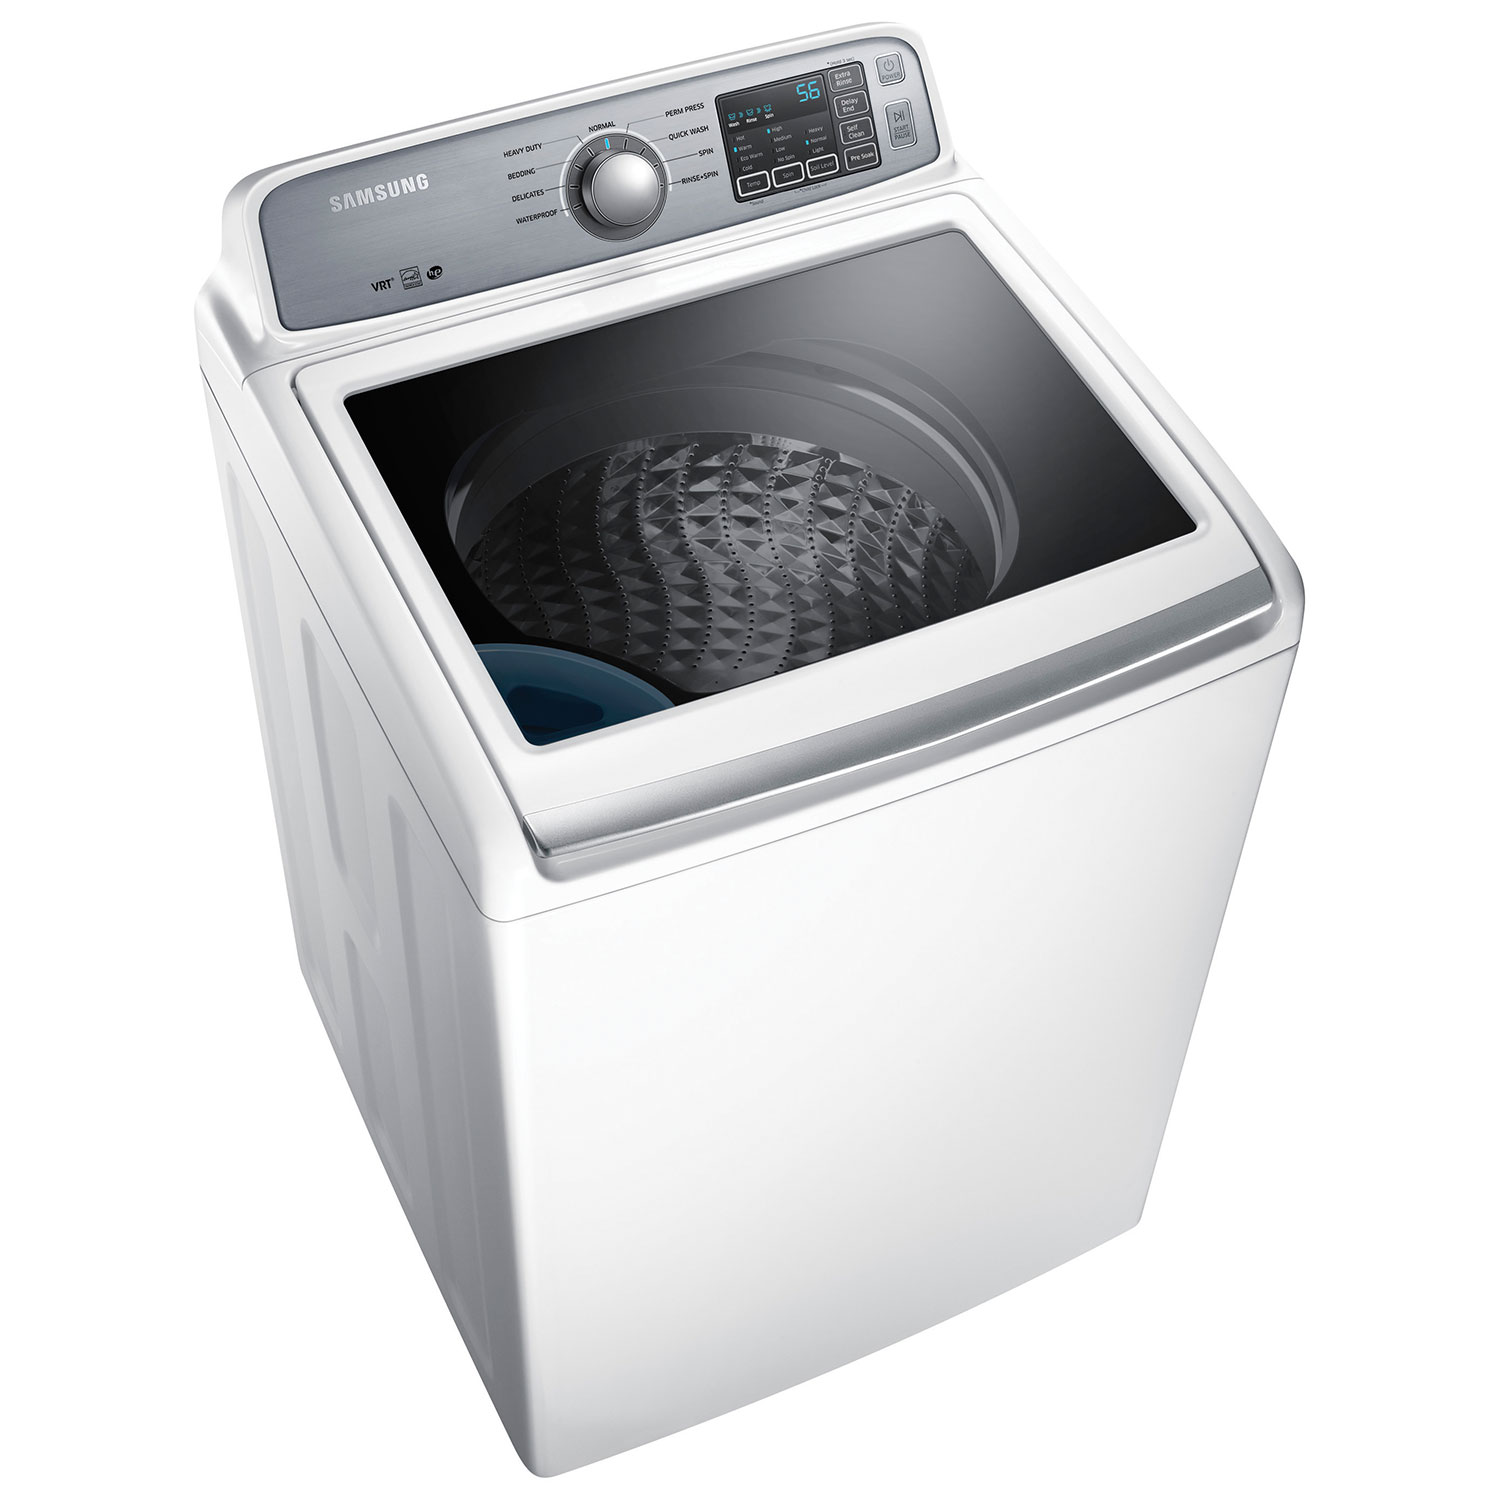 Topload Washer Samsung 52 Cu Ft High Efficiency Top Load Washer Wa45h7000aw